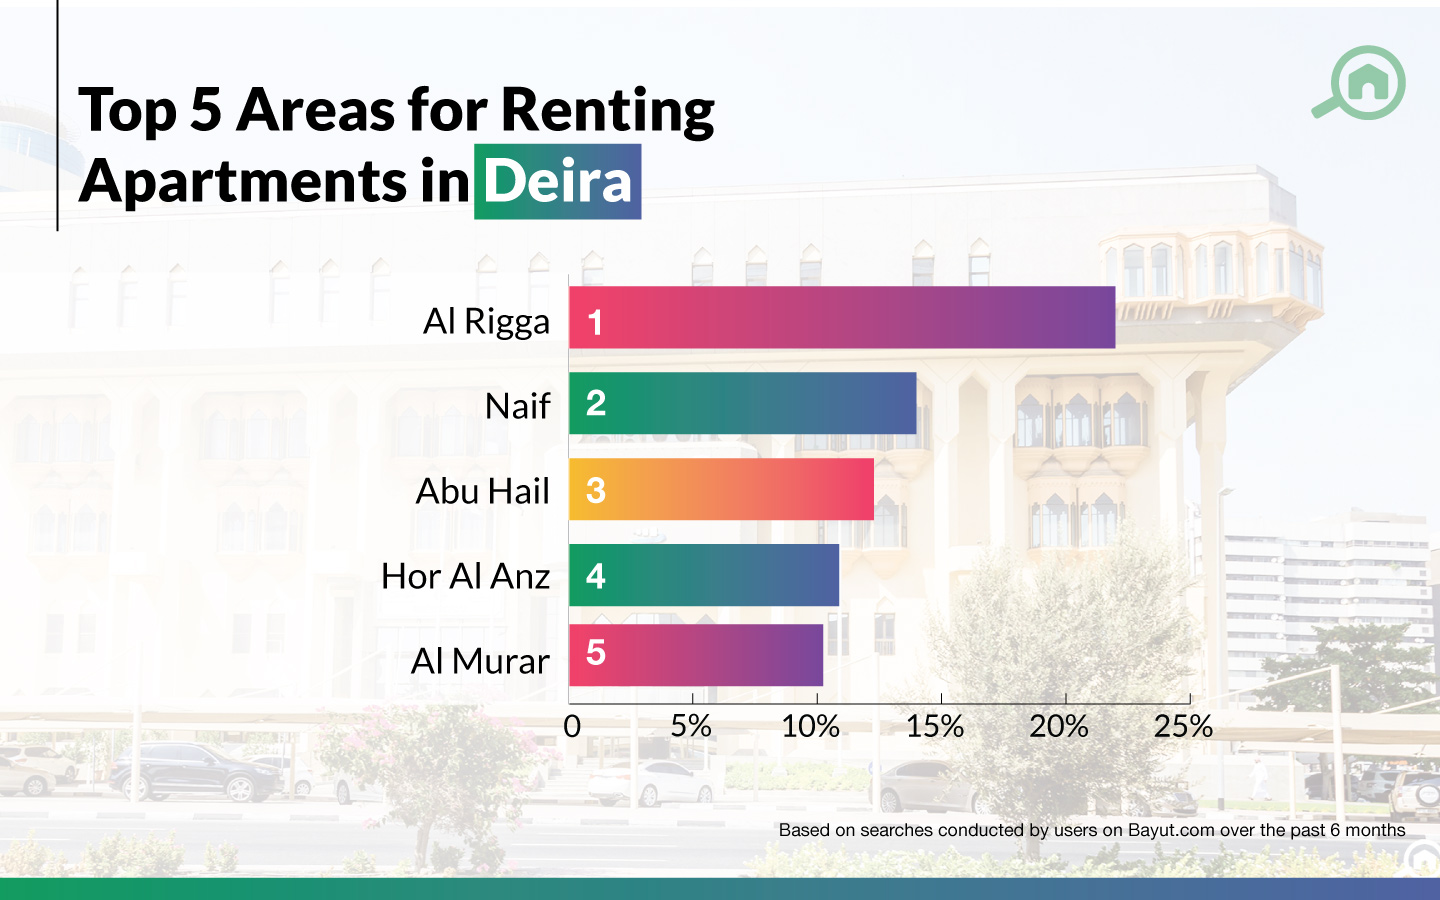 Top areas for renting flats in Deira